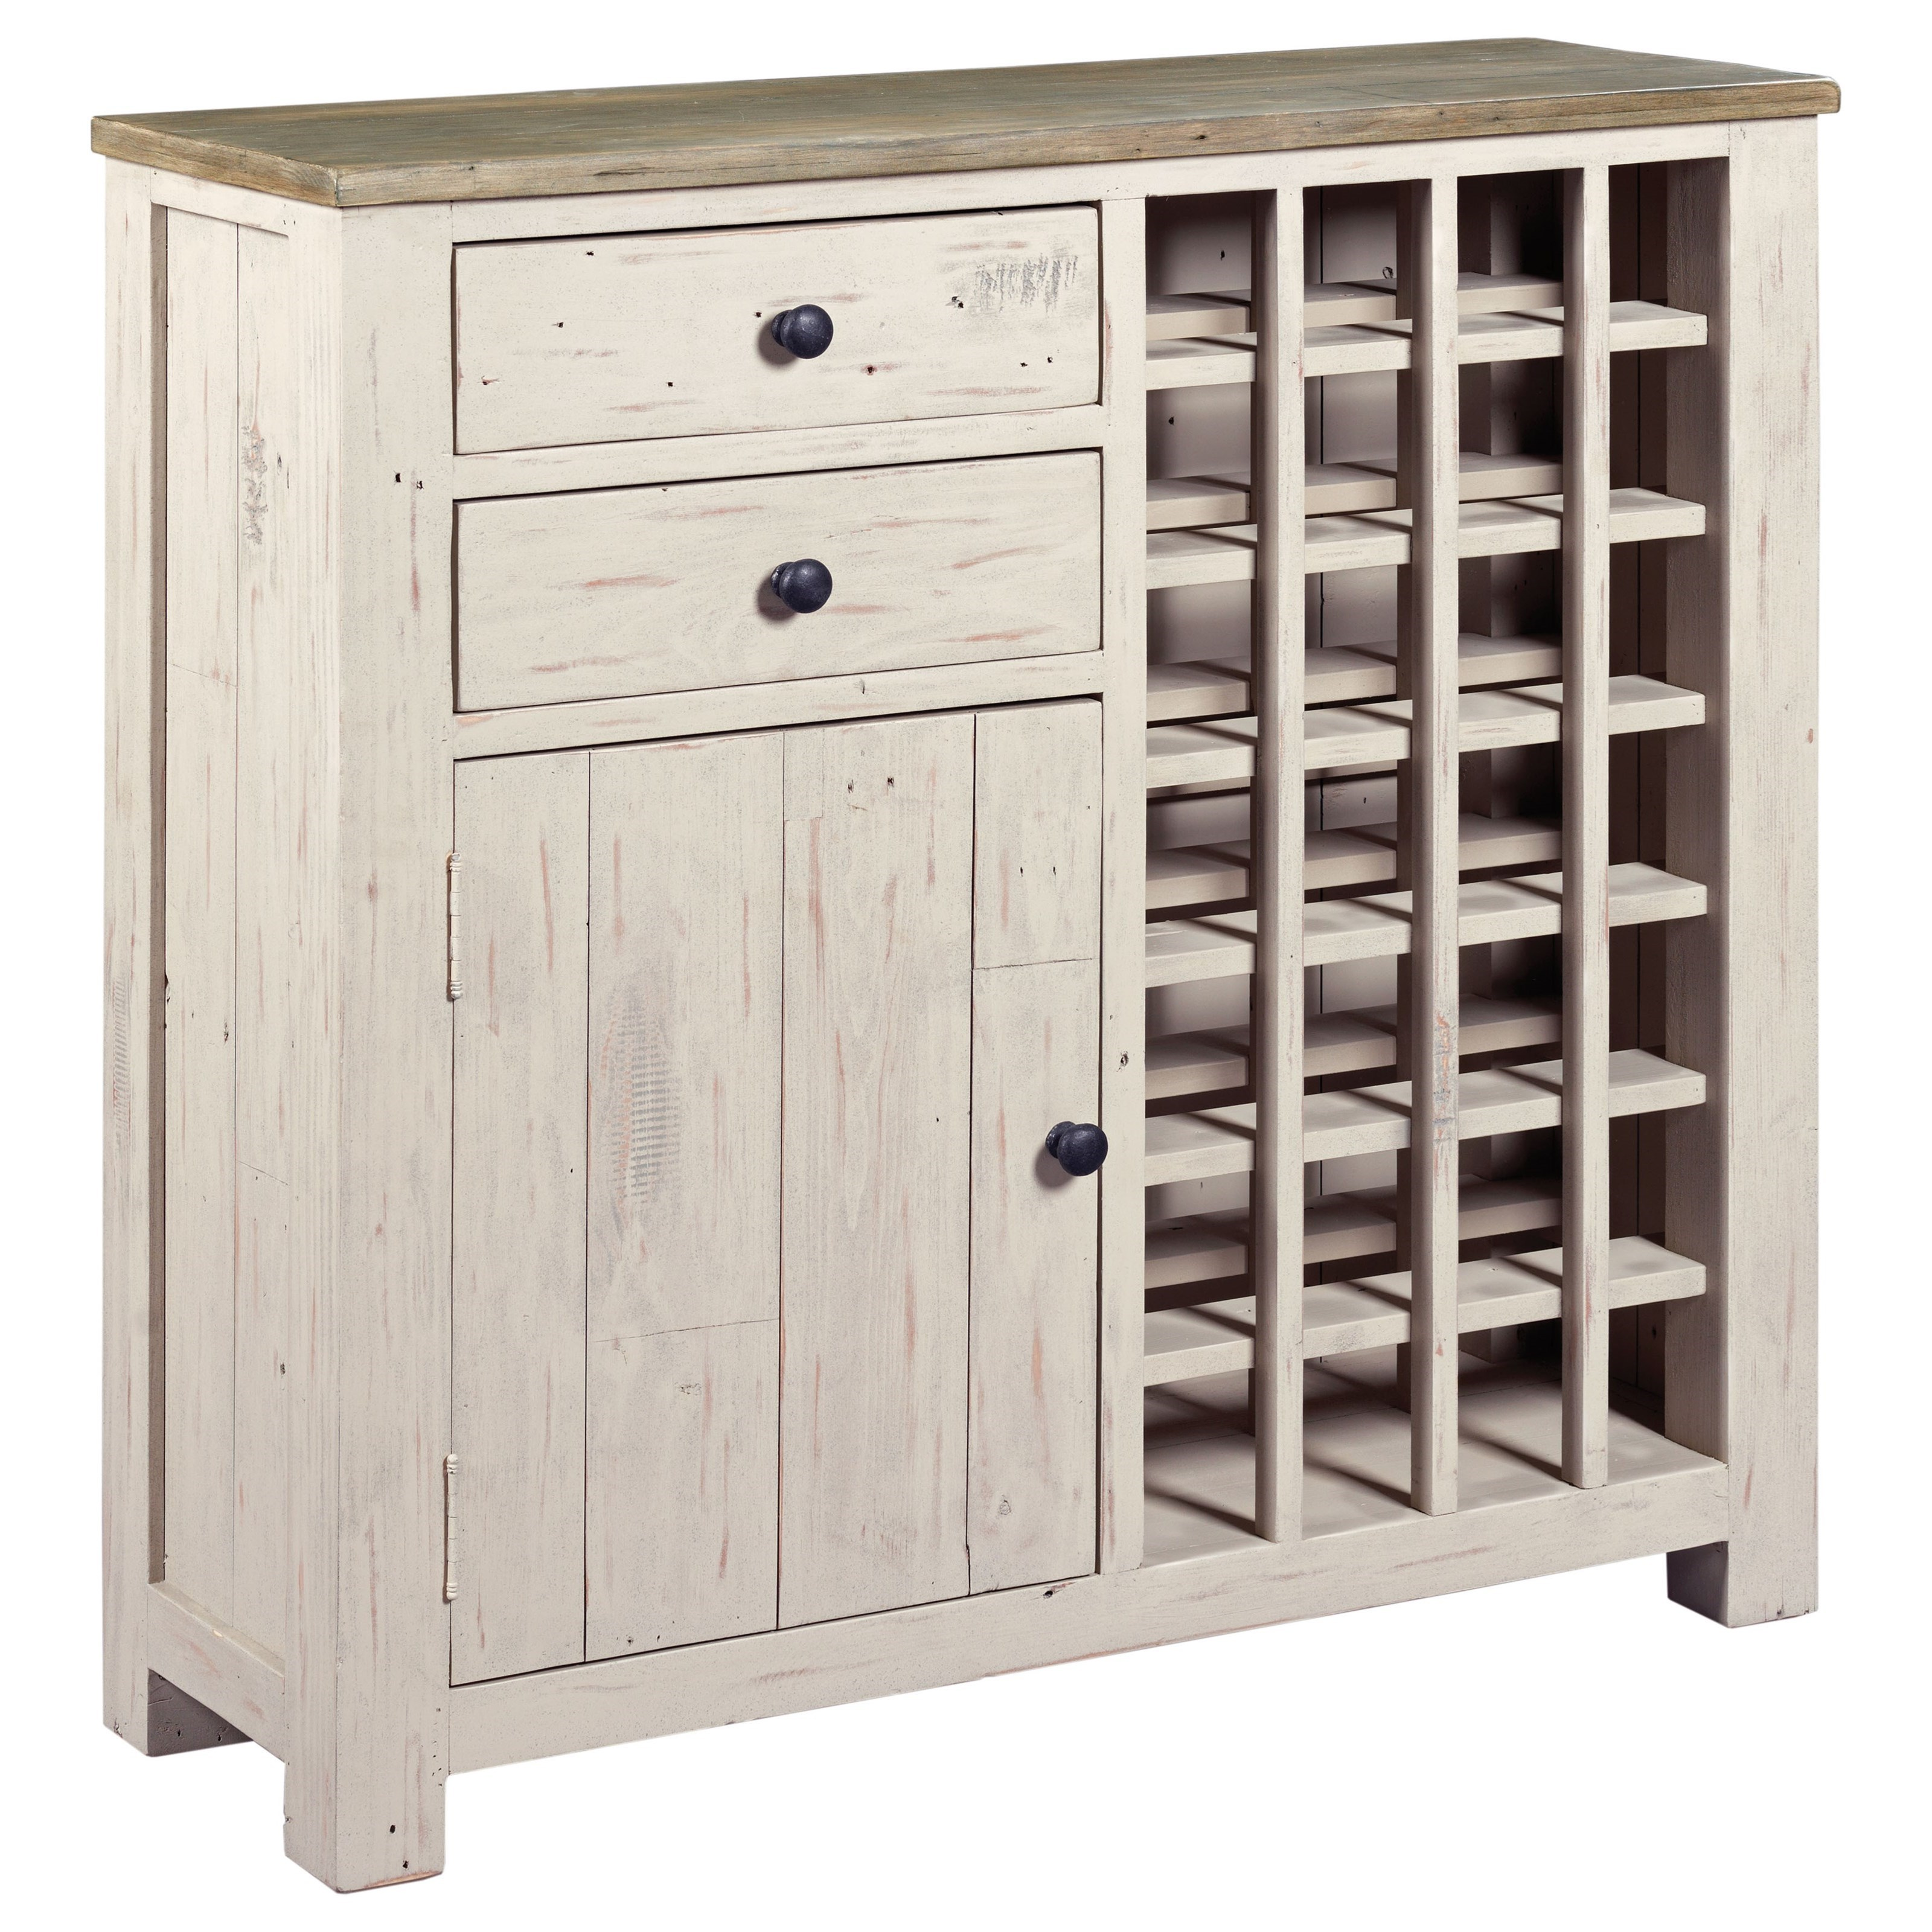 Reclamation Place                                  Wine Server by Hammary at Alison Craig Home Furnishings